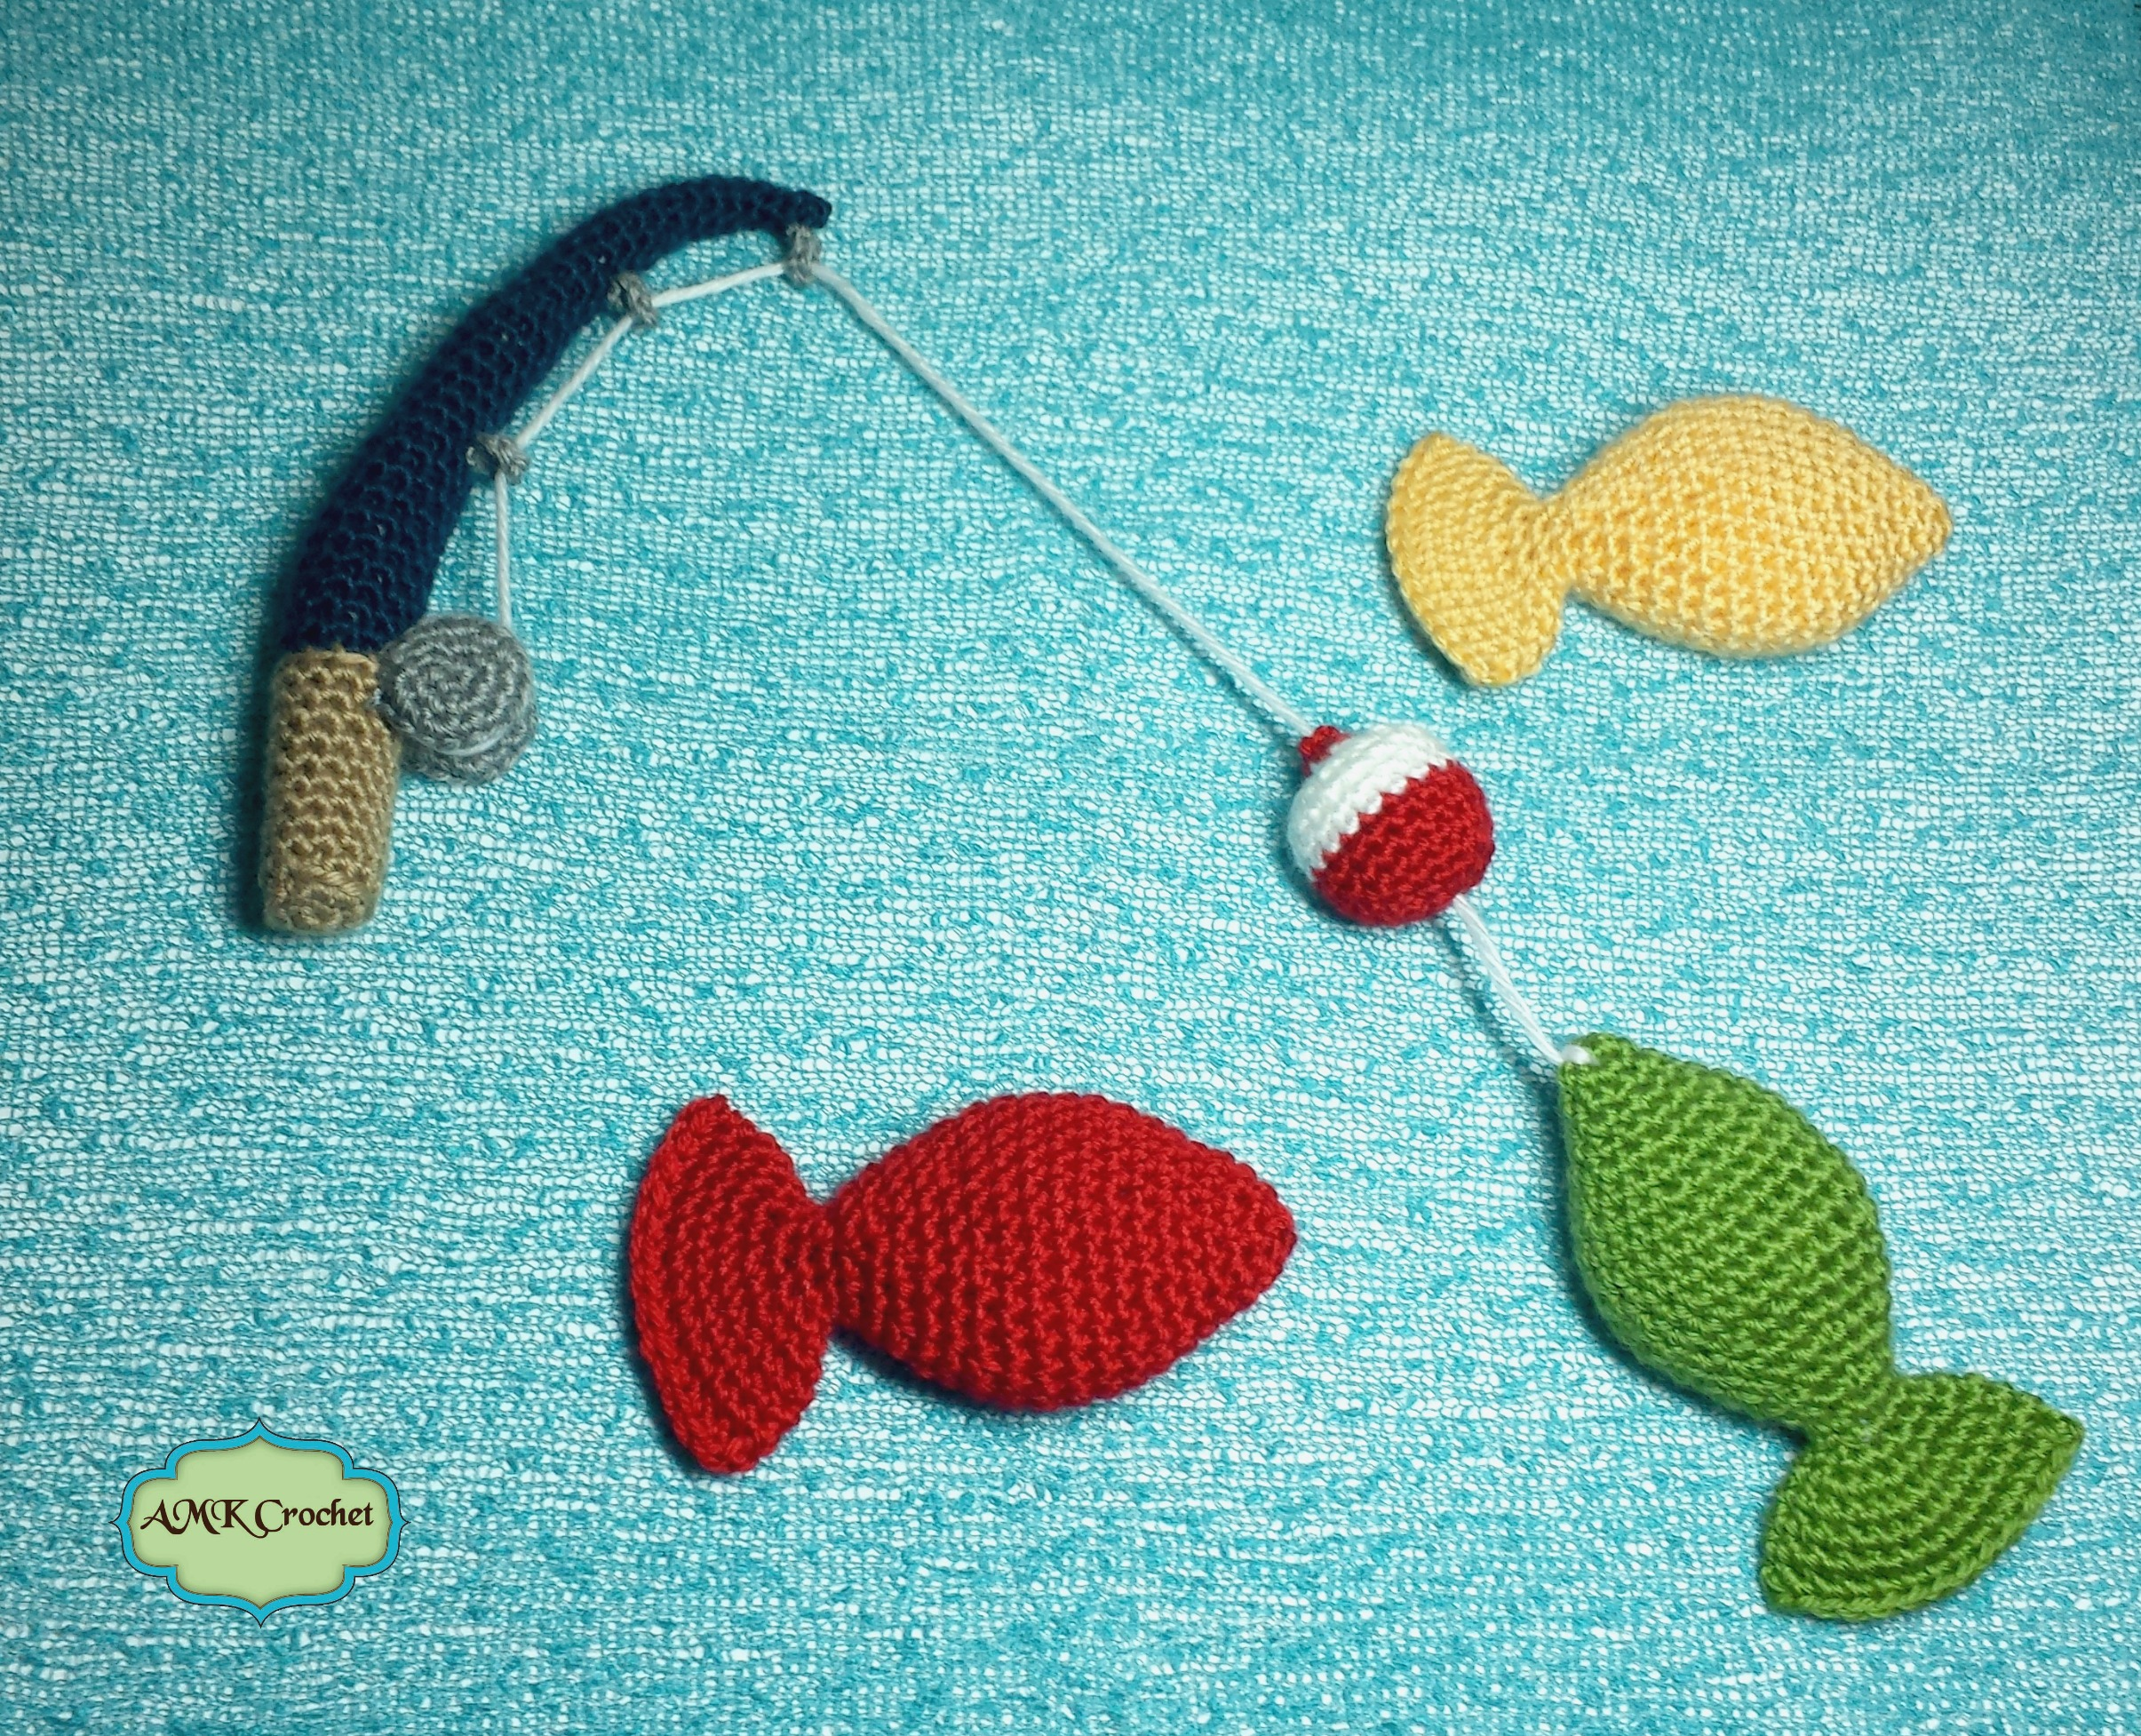 crochet fishing pole with bobber and amigurumi fish pattern amk crochet. Black Bedroom Furniture Sets. Home Design Ideas